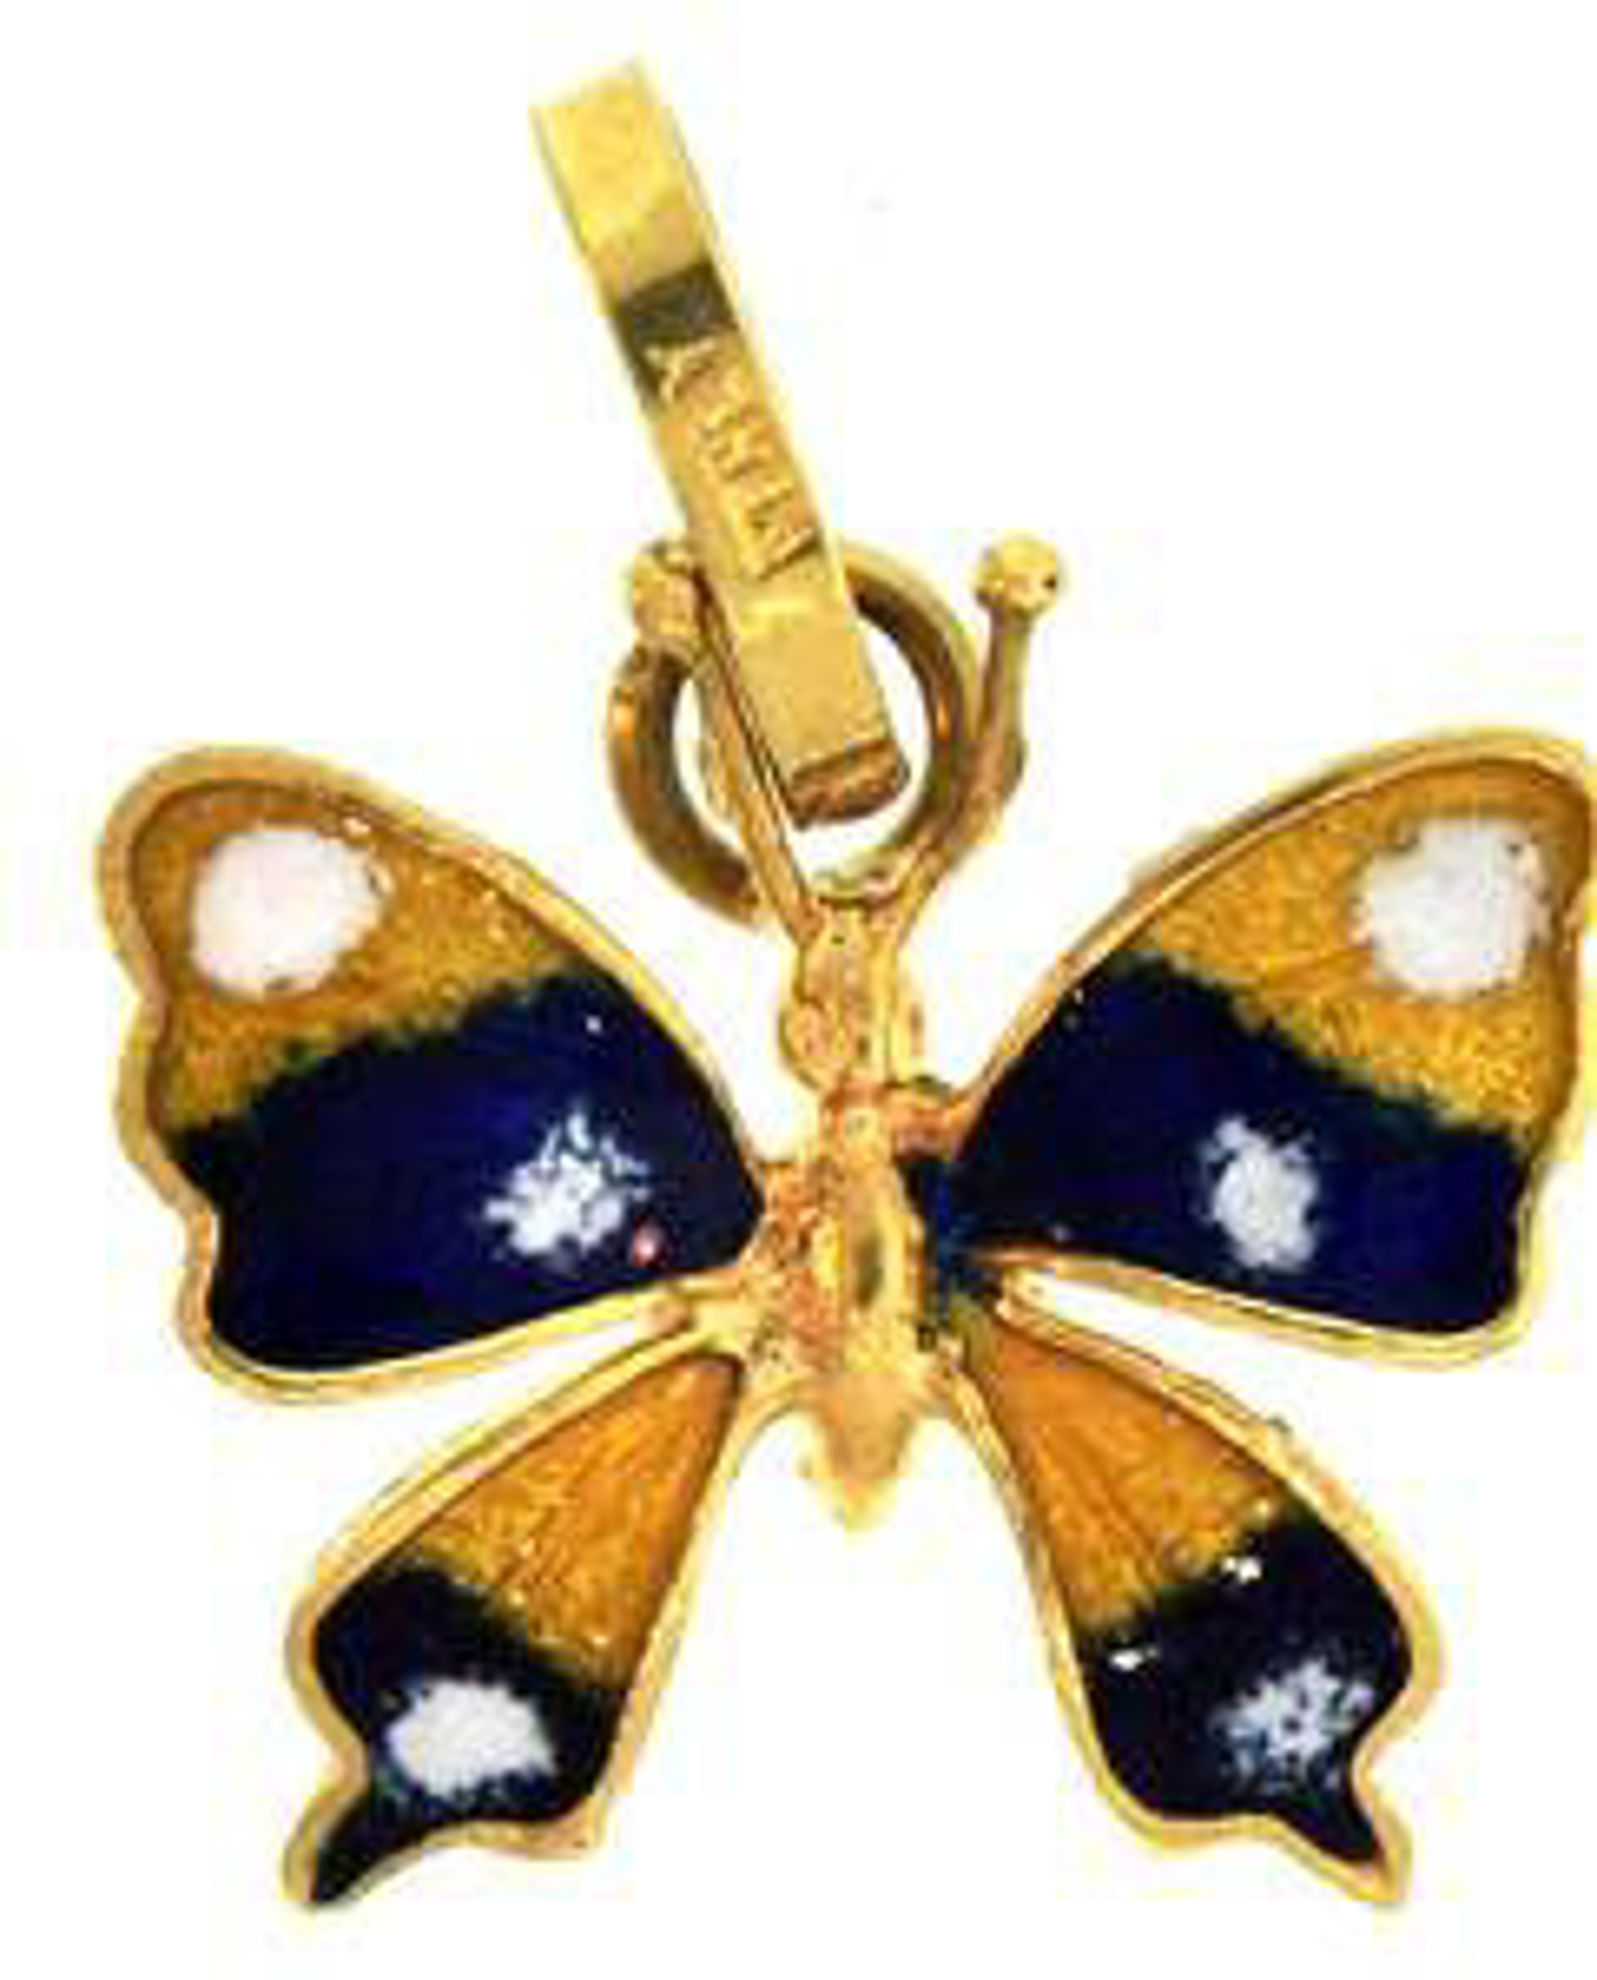 Picture of Charms & Pendants 14kt-1.0 DWT, 1.6 Grams